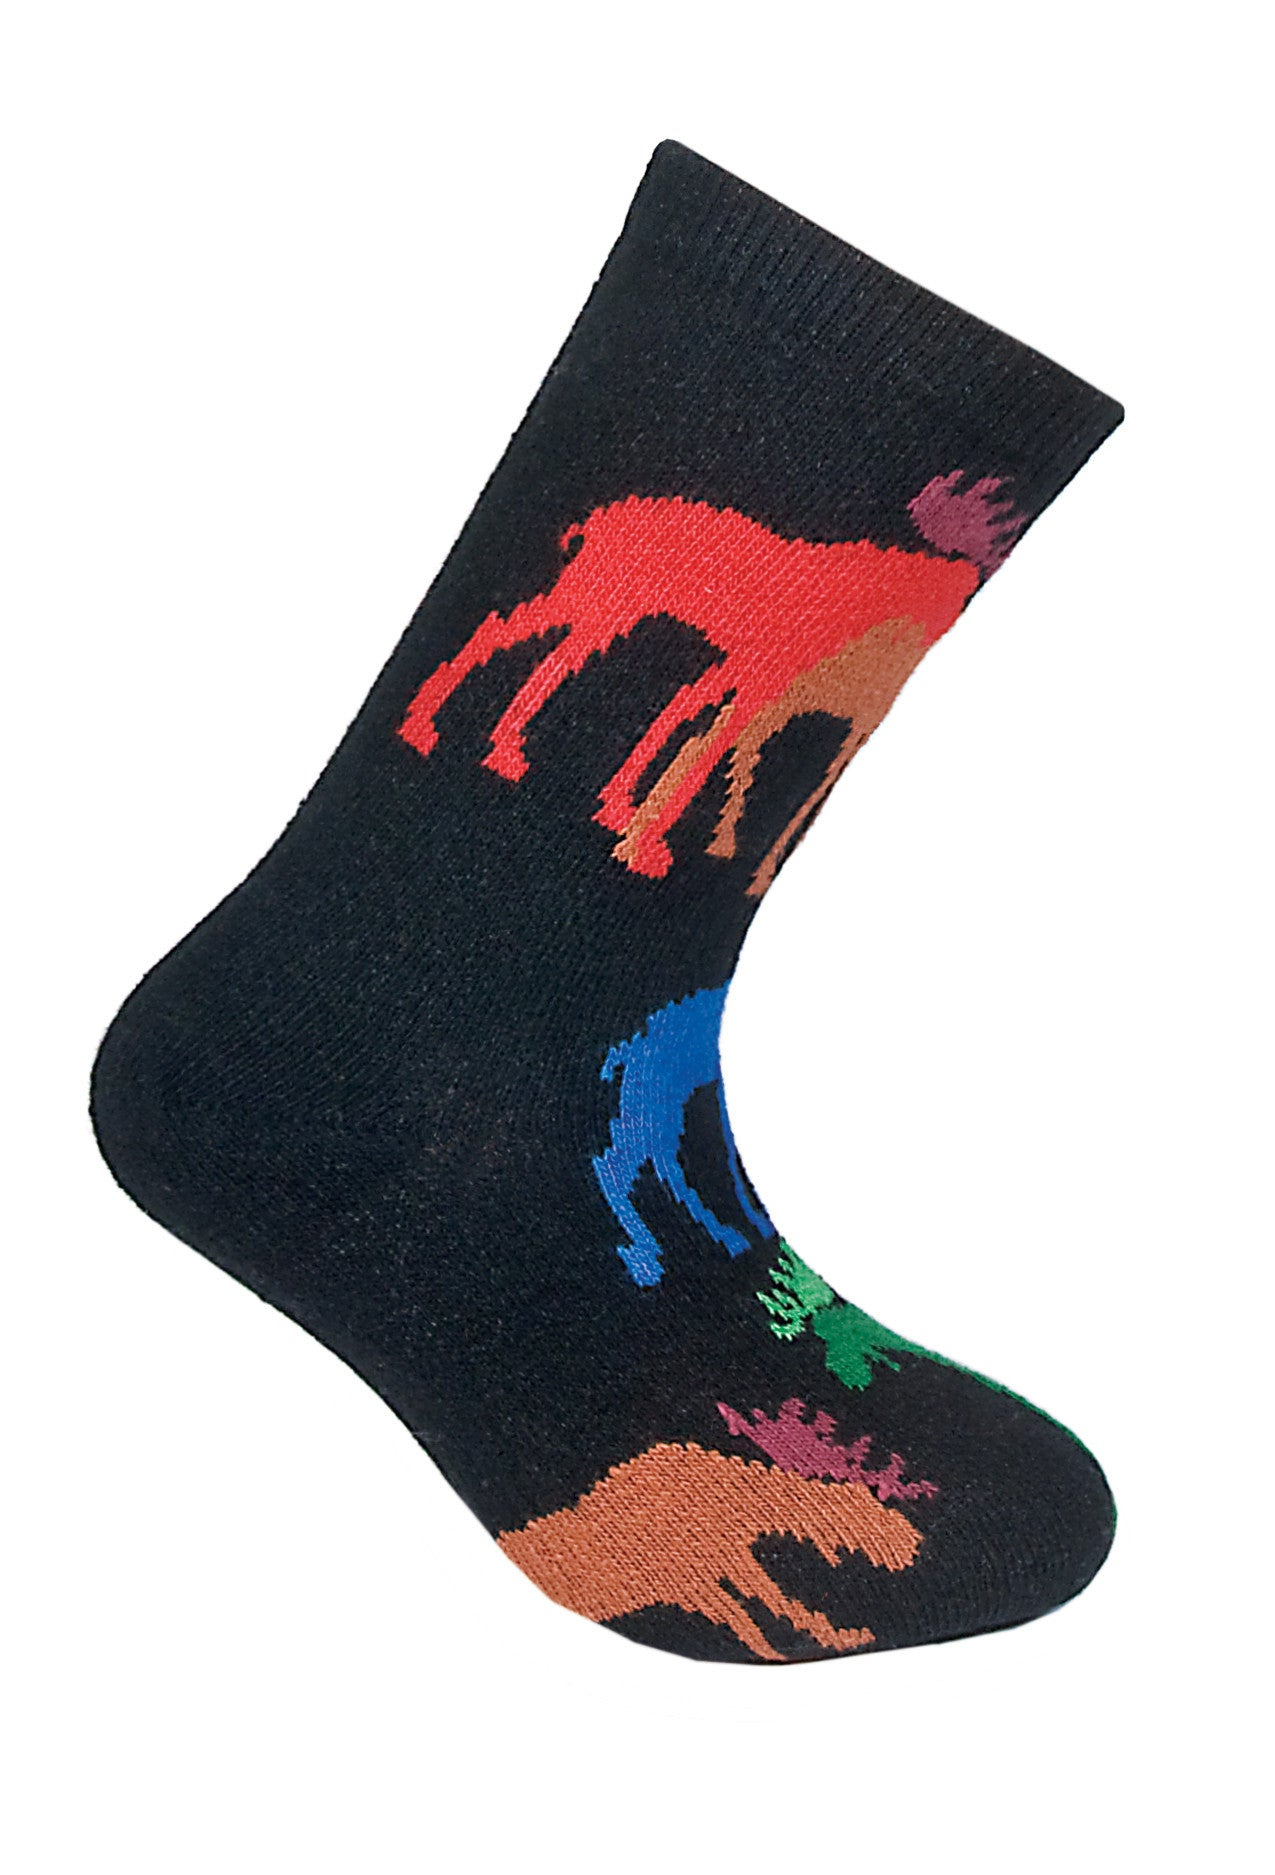 Moose, Colorful on Black Crew Socks